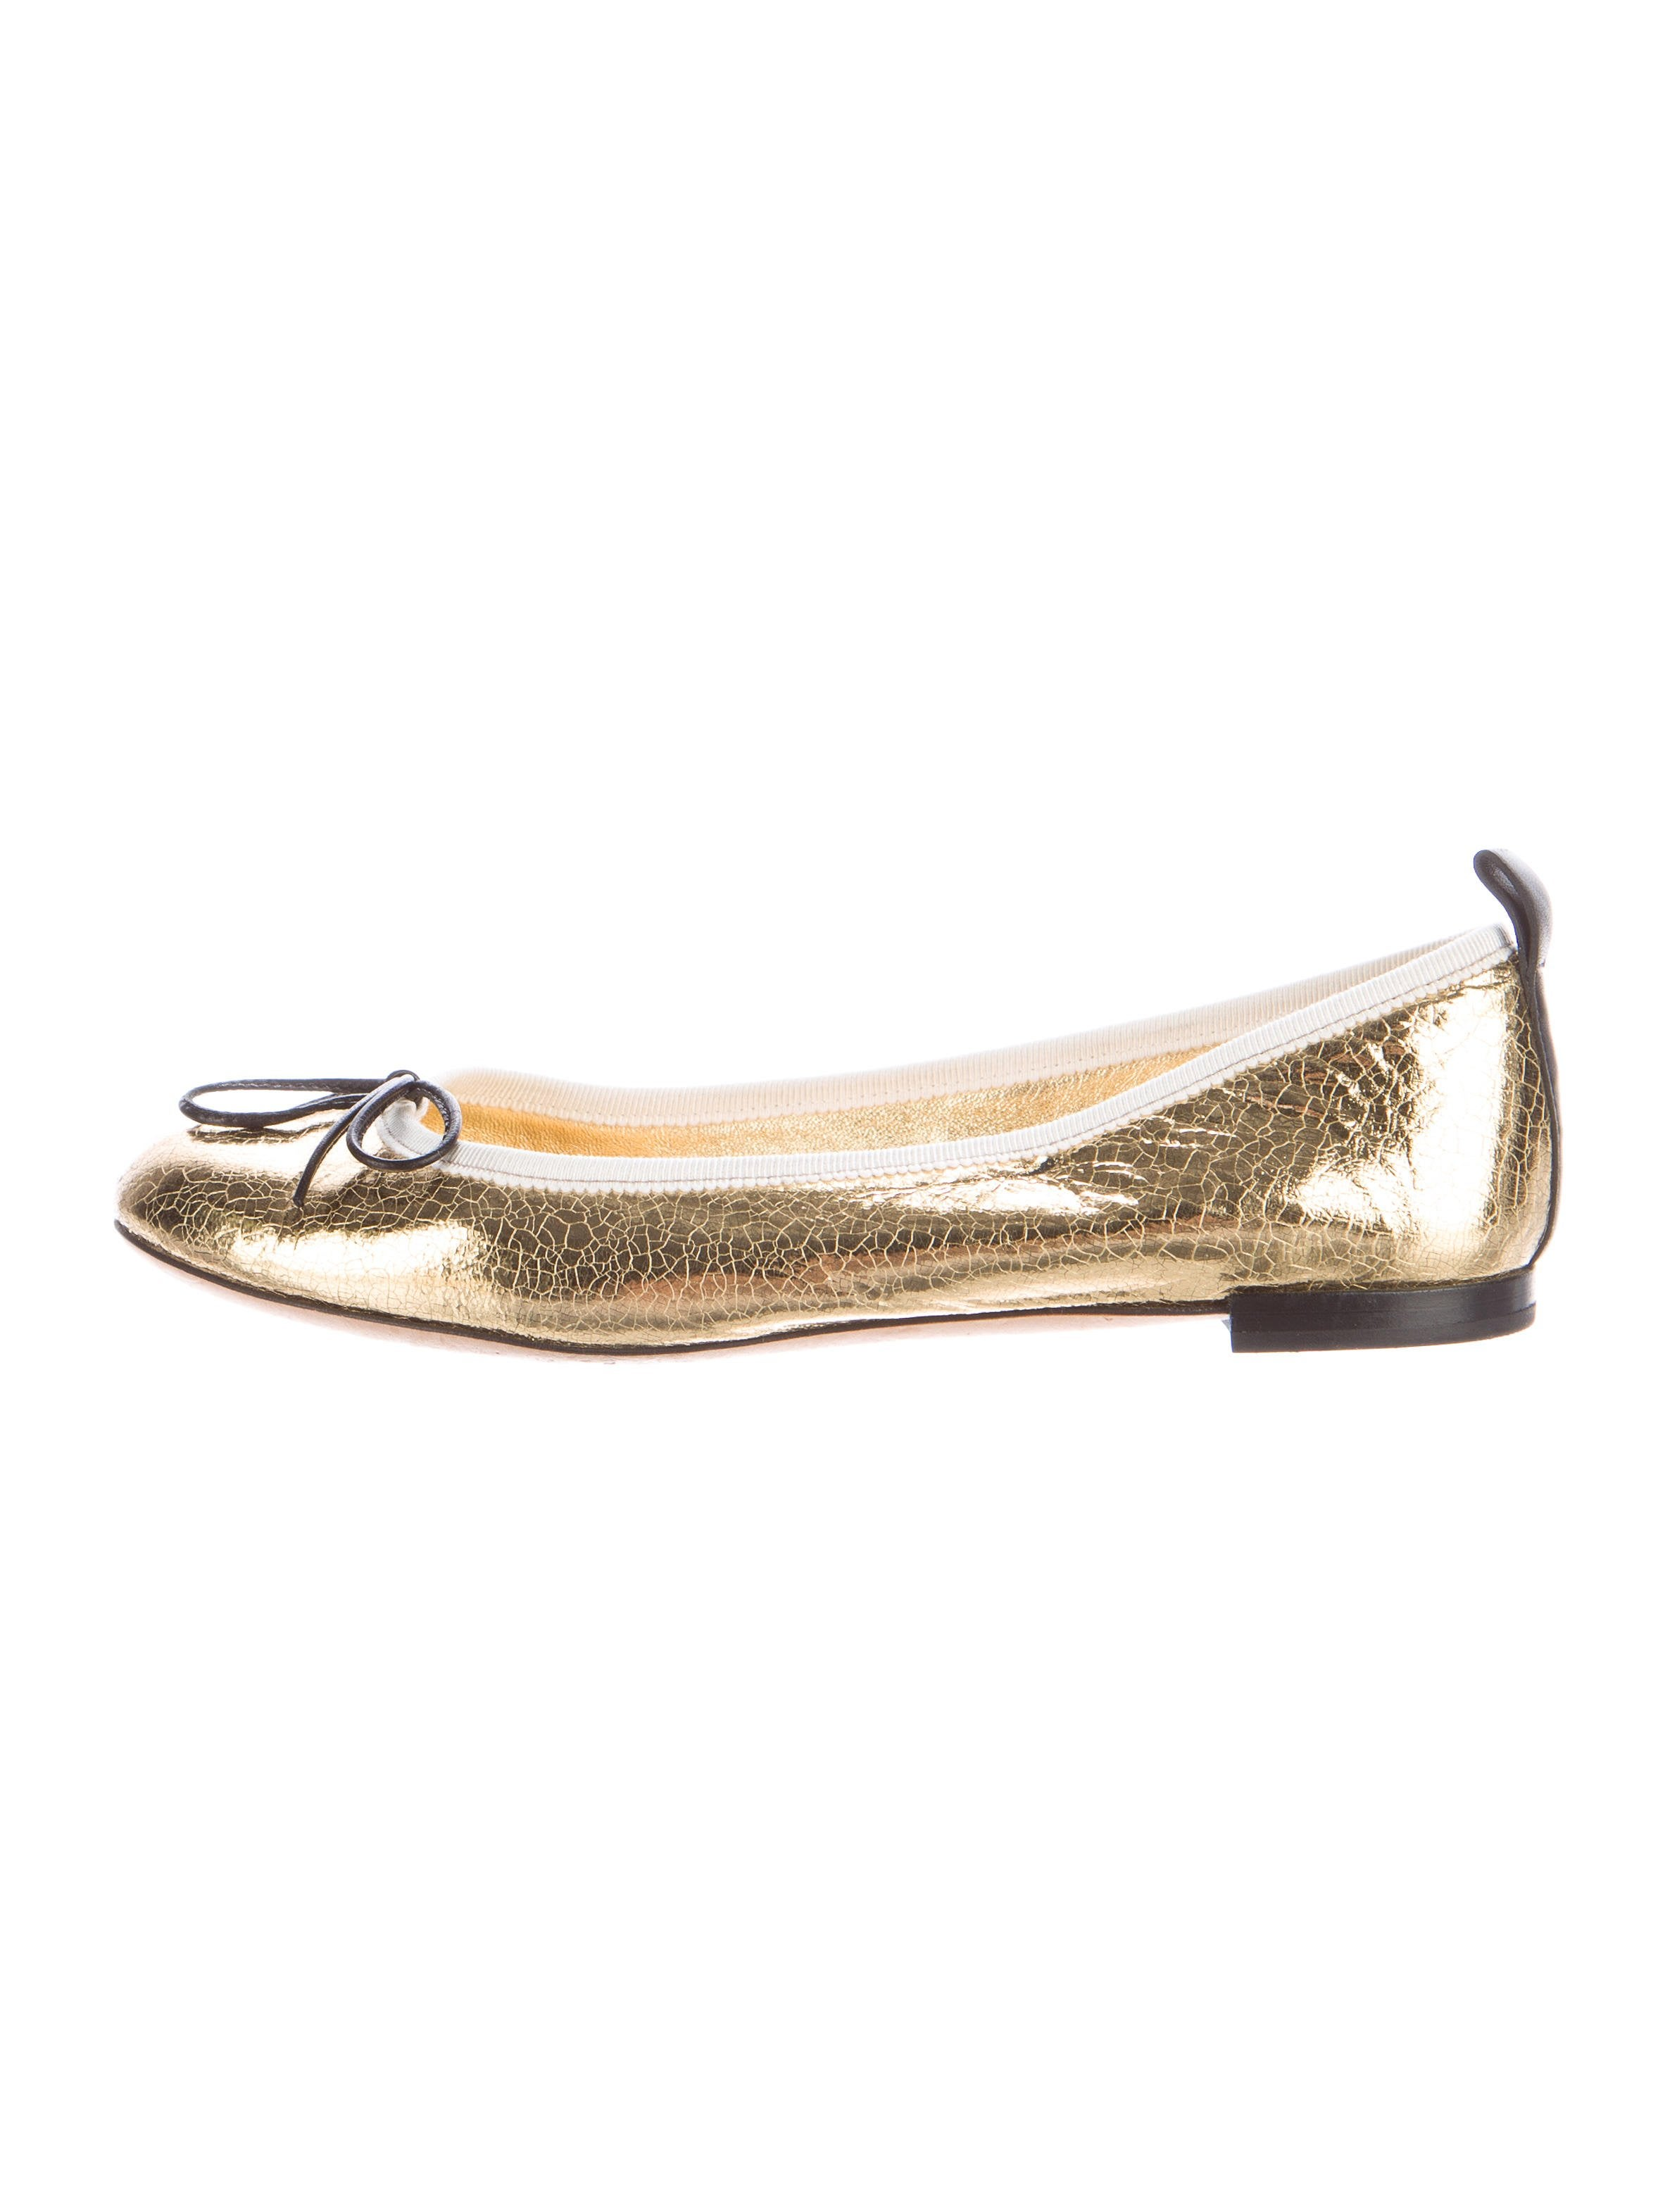 Gucci Metallic Ballet Flats - Shoes - GUC134389 | The RealReal